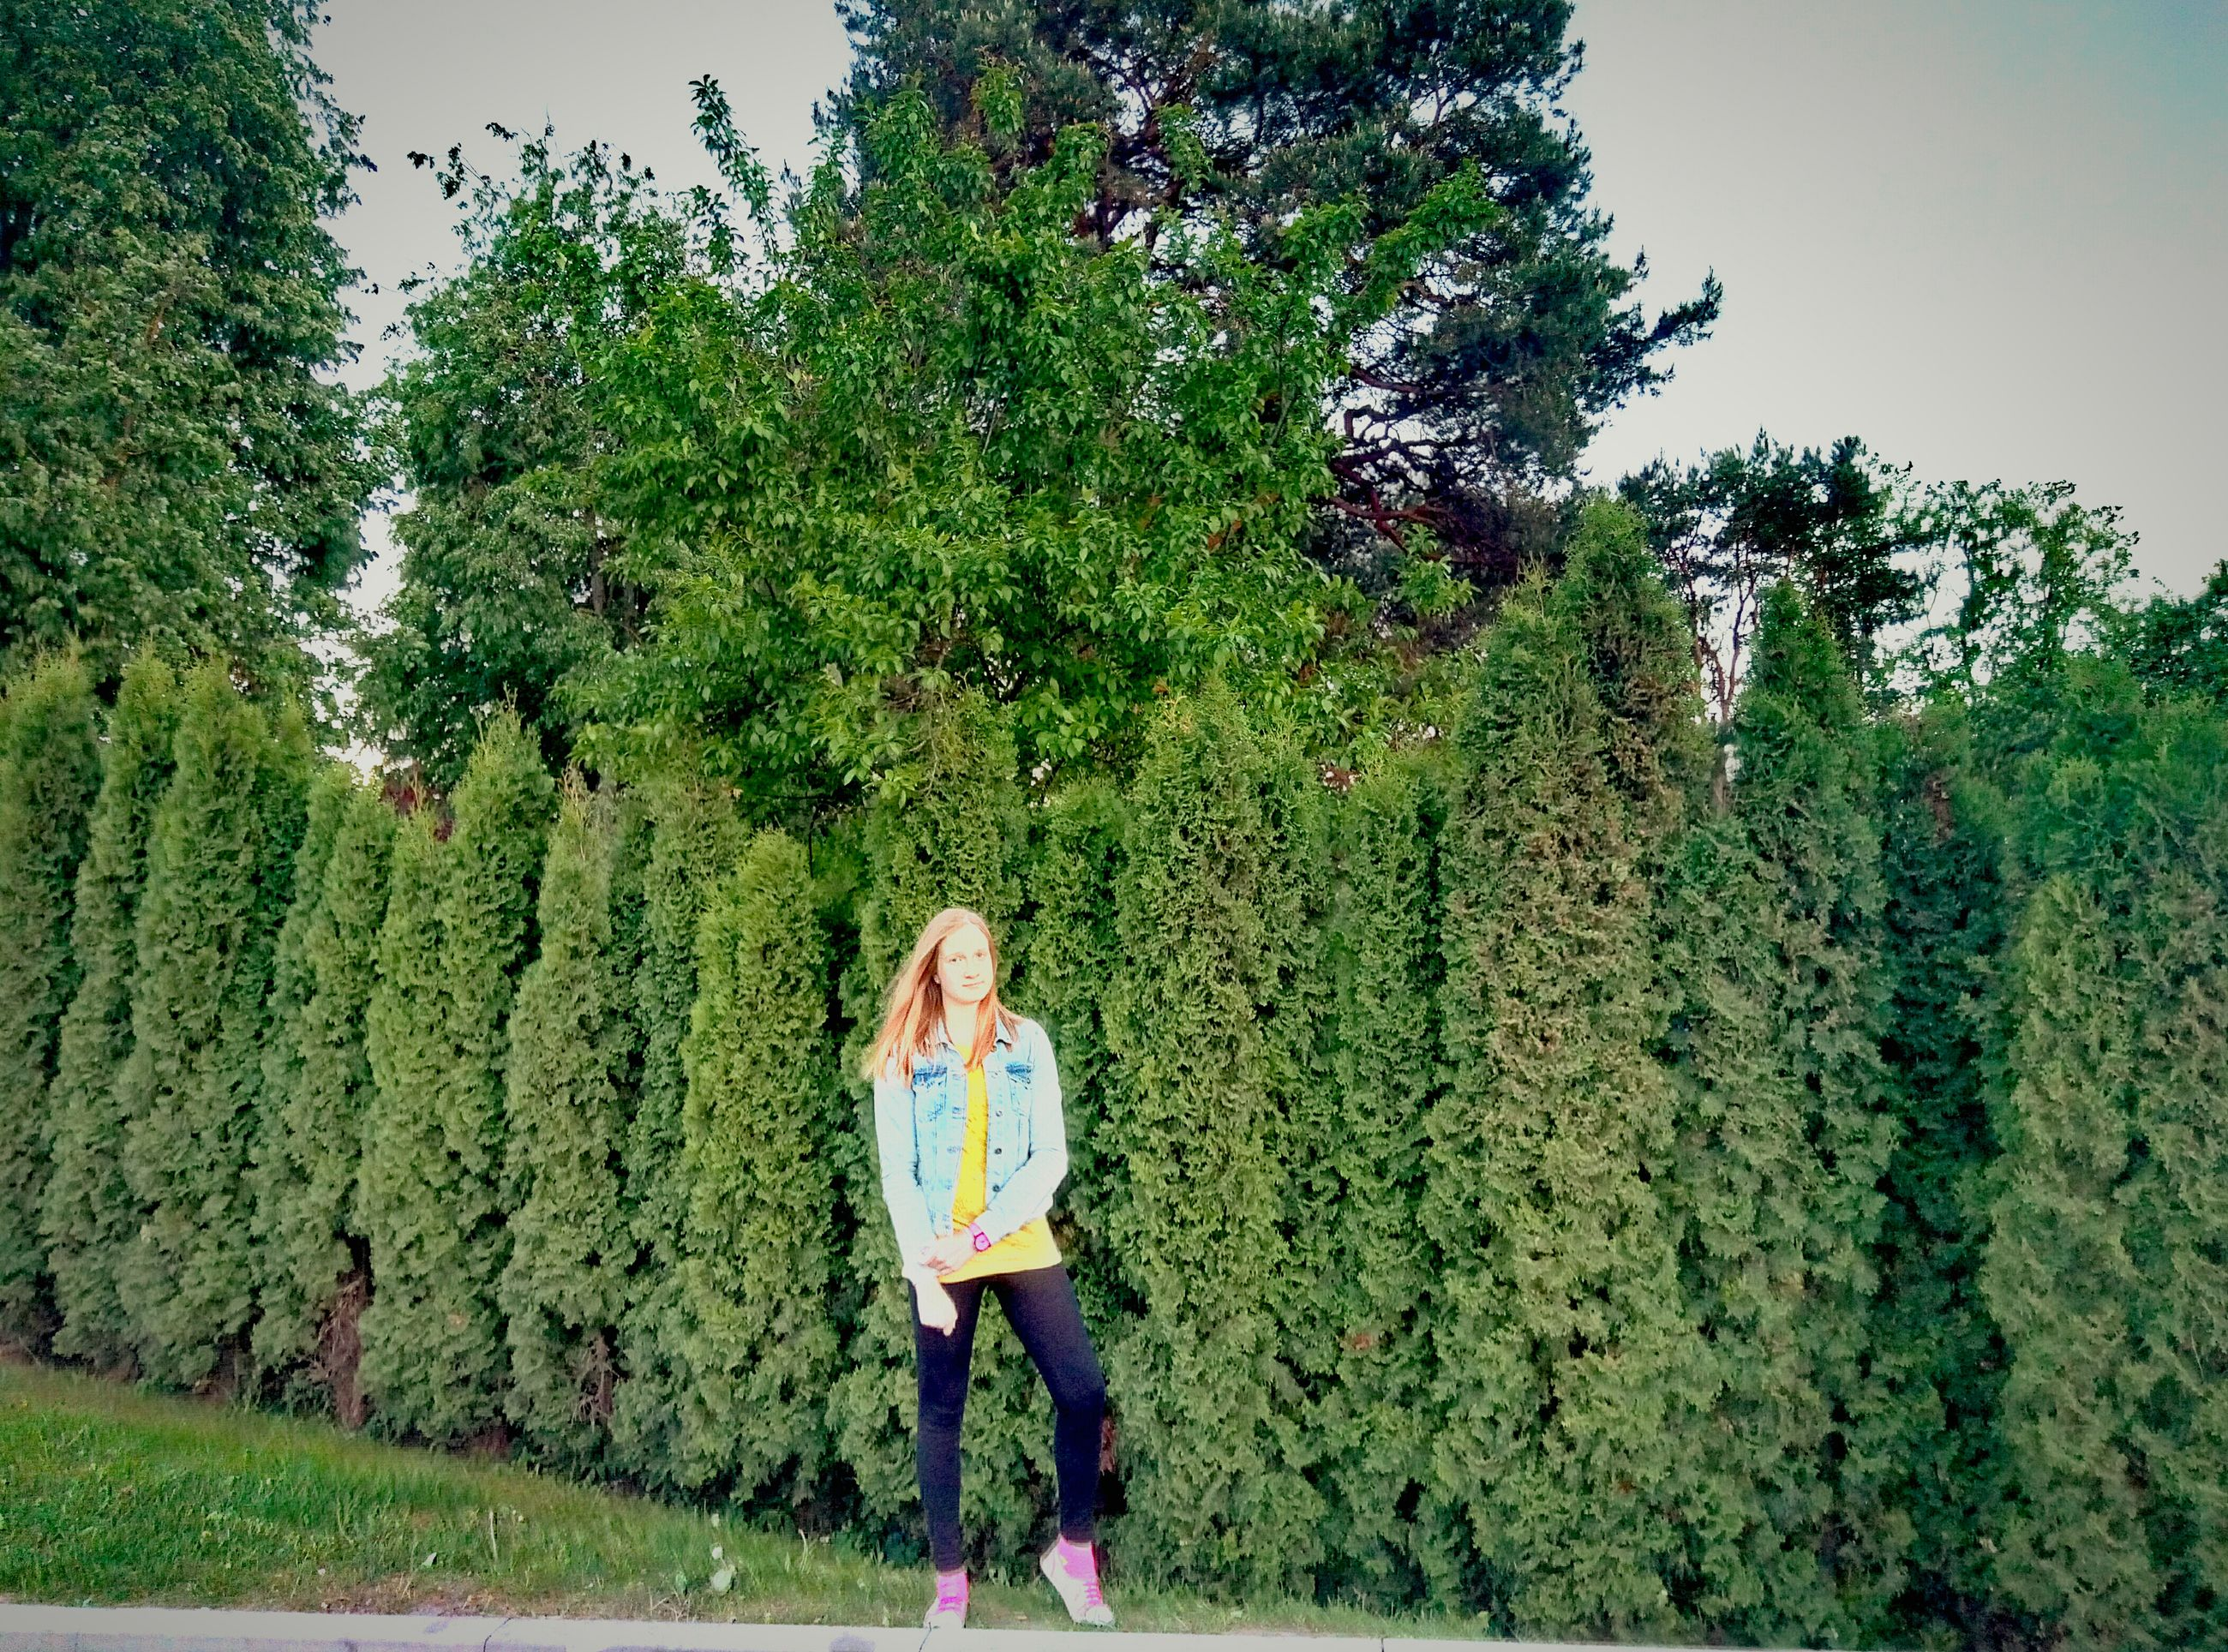 growth, tree, green color, one person, casual clothing, standing, day, real people, nature, blond hair, plant, full length, outdoors, lifestyles, young women, women, young adult, environmentalist, grass, adult, adults only, people